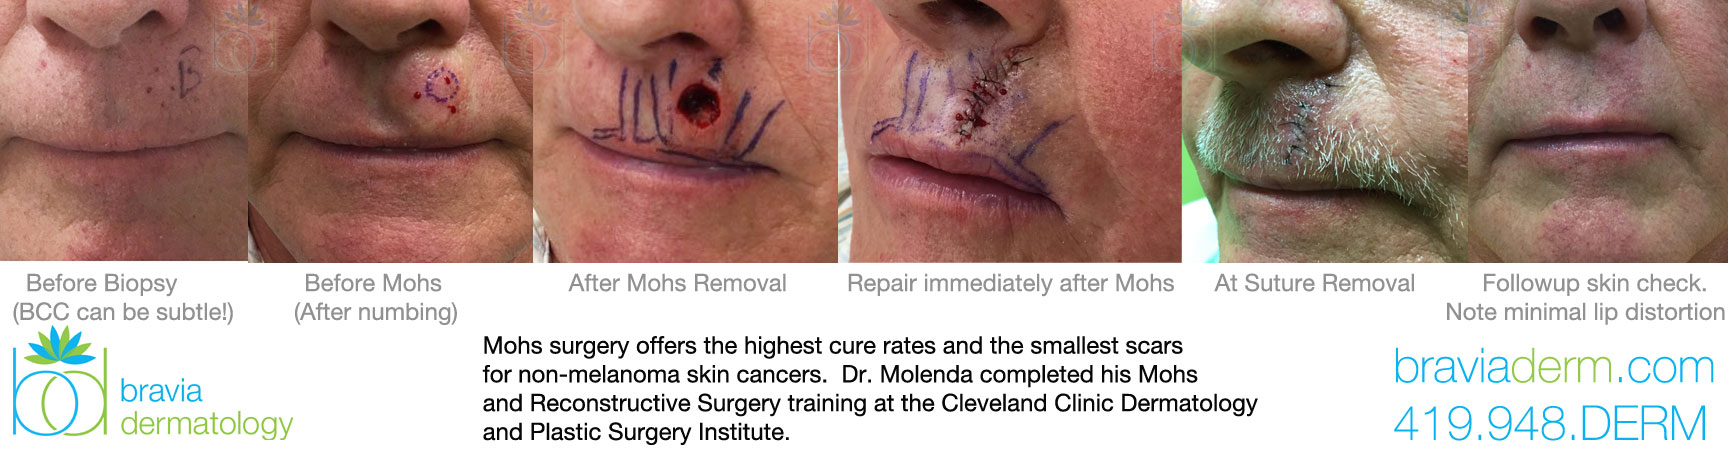 Mohs Surgery offers the highest cure rates and the smallest scars.